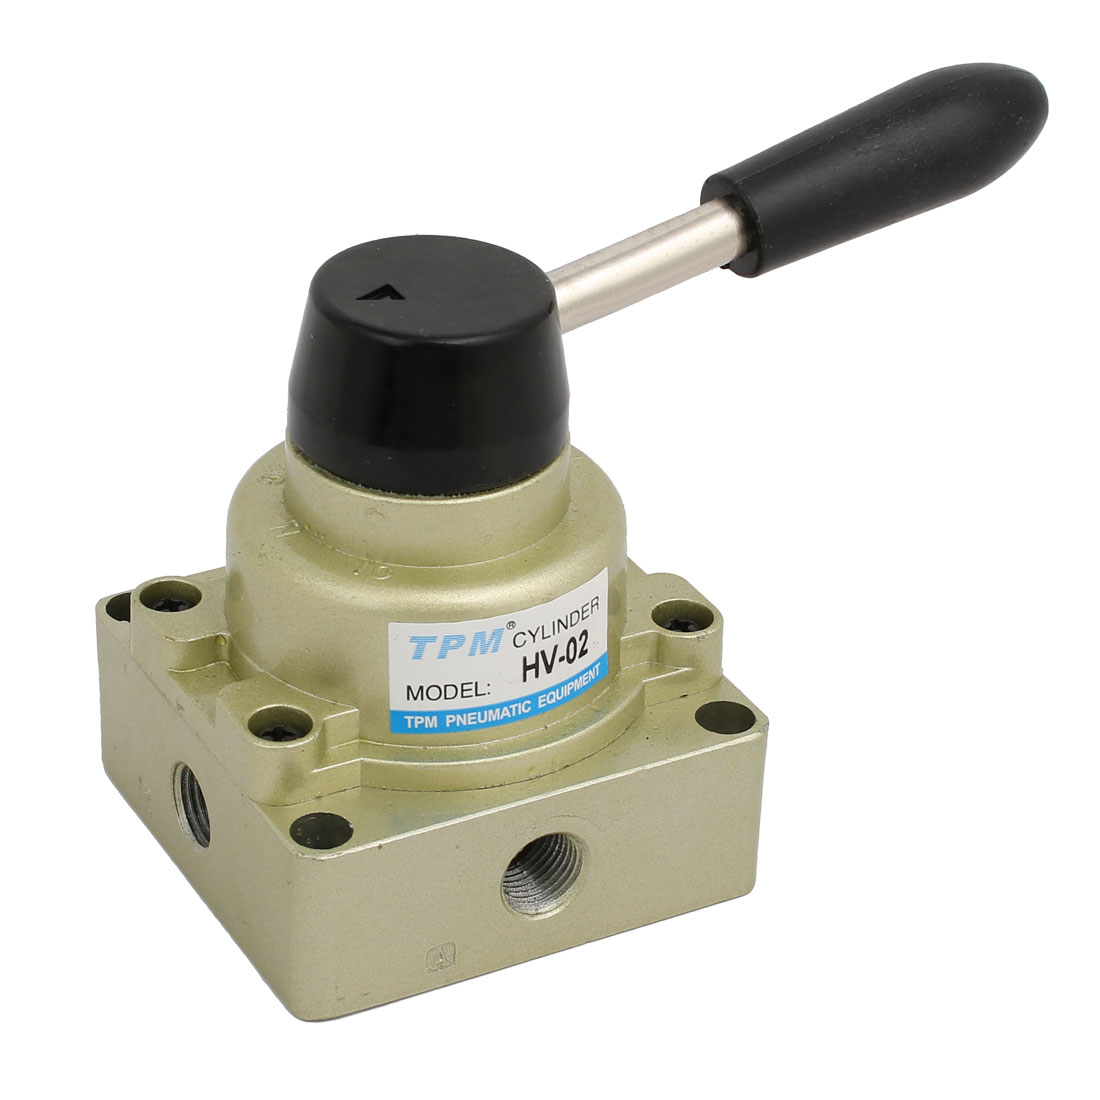 Manual Pneumatic 3 Positions 4 Way 1/4BSP HV-02 Hand Operated Lever Air Valve - image 3 of 3